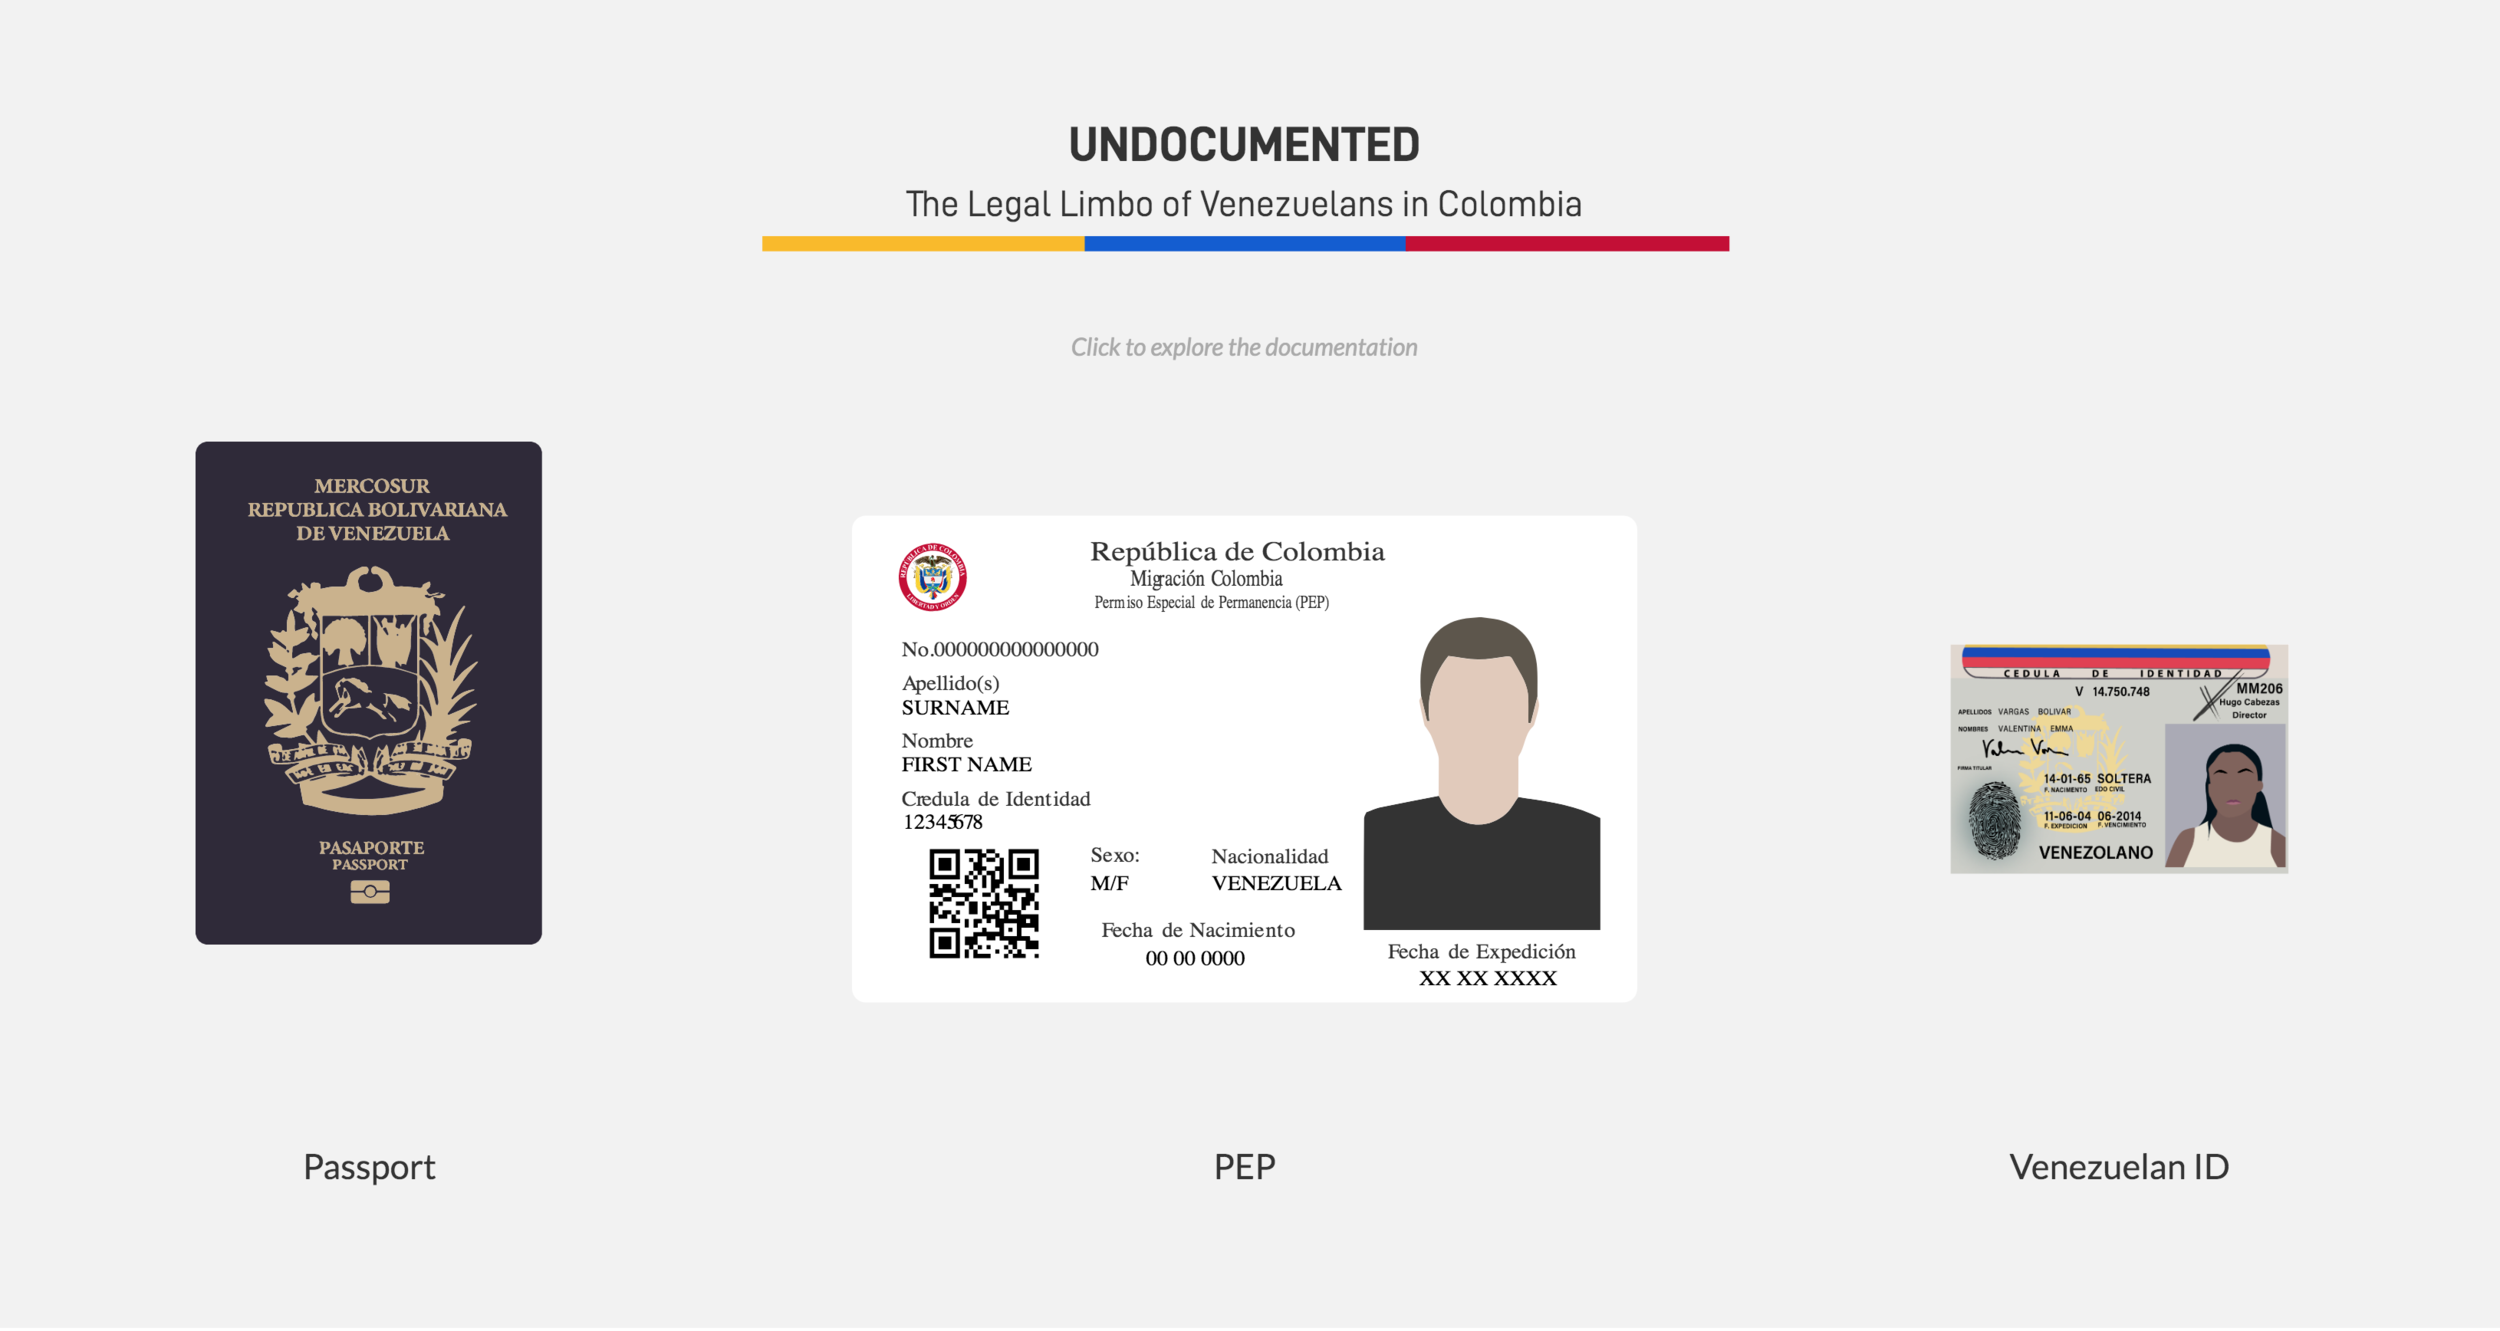 interactive element to explain the documentation that Venezuelans have in Colombia